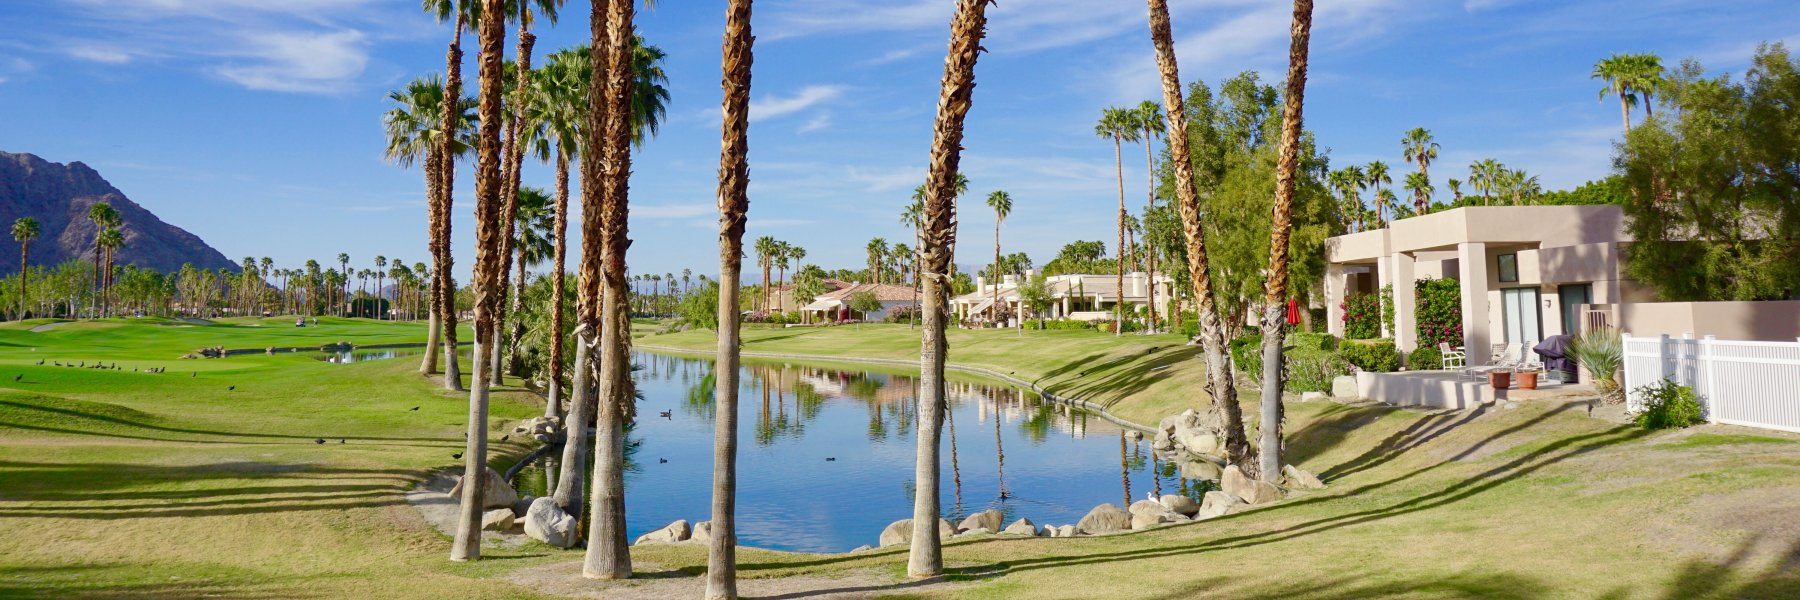 PGA West Nicklaus Tournament is a community of homes in La Quinta California